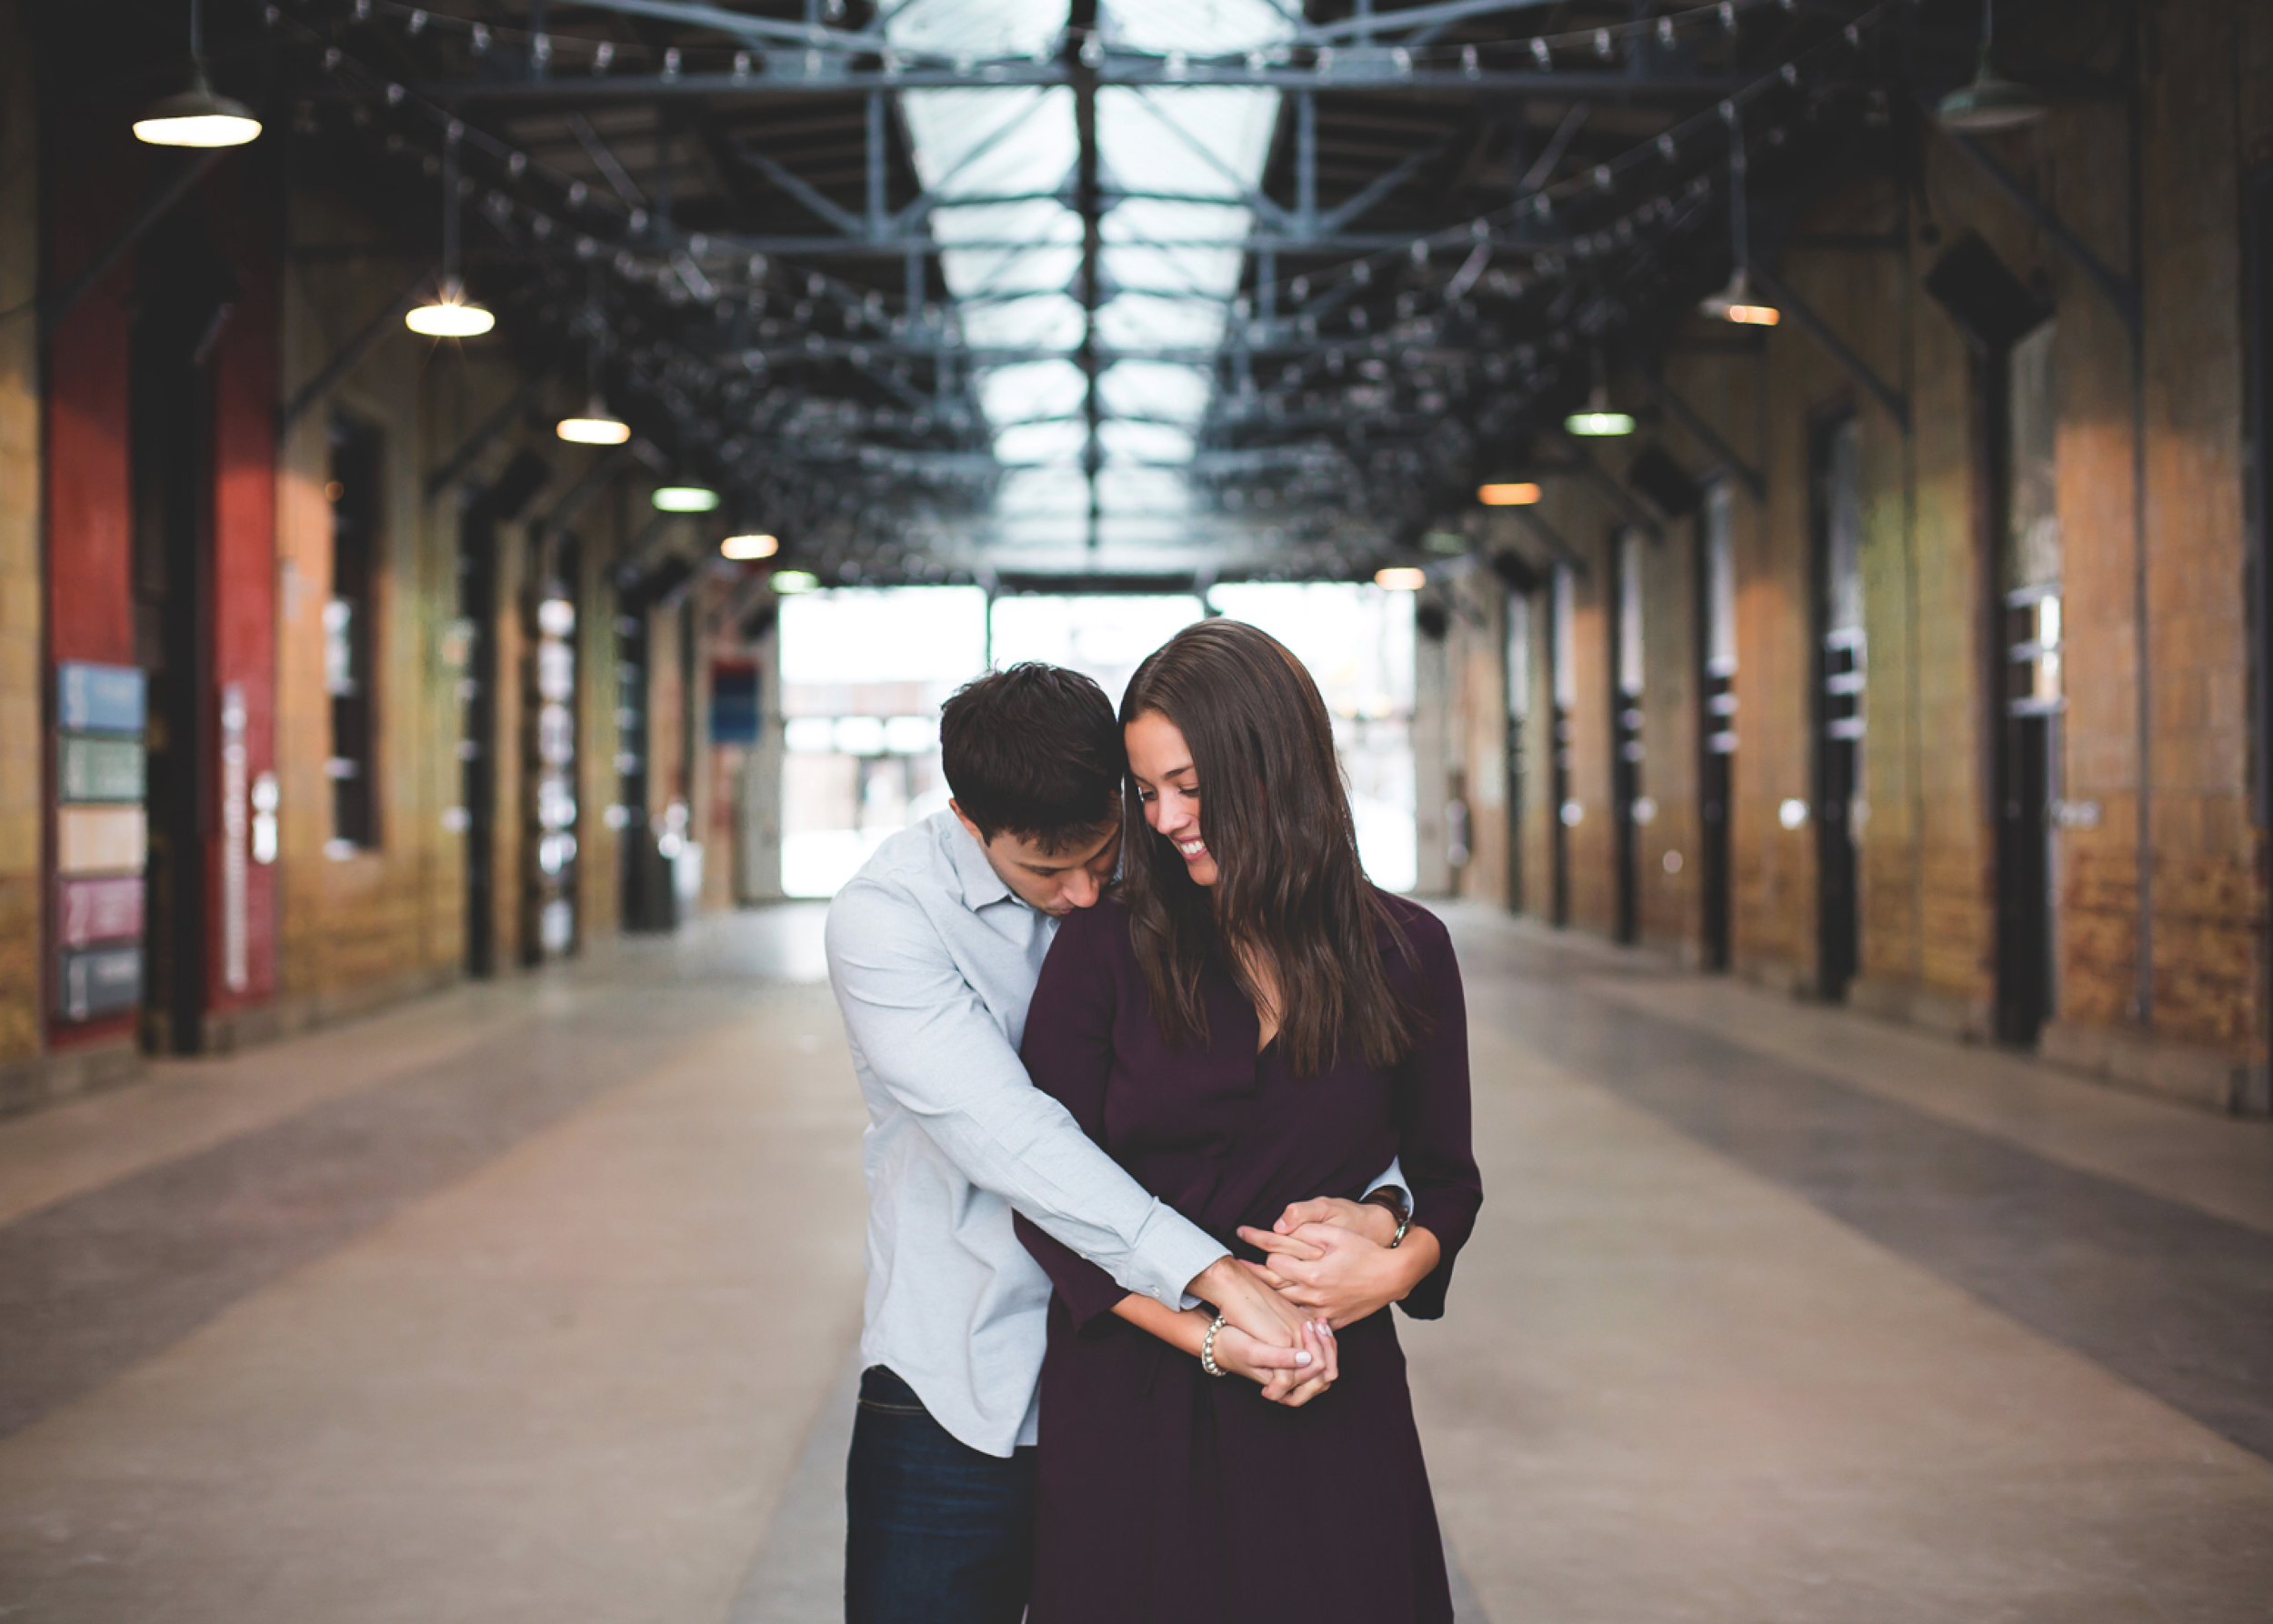 Engagement-Session-Downtown-Toronto-Hamilton-Burlington-Oakville-Niagara-Wedding-Photographer-Engaged-Photography-Artscape-Wynchwood-Barn-Urban-HamOnt-Engaged-Moments-by-Lauren-Photo-Image-1.png